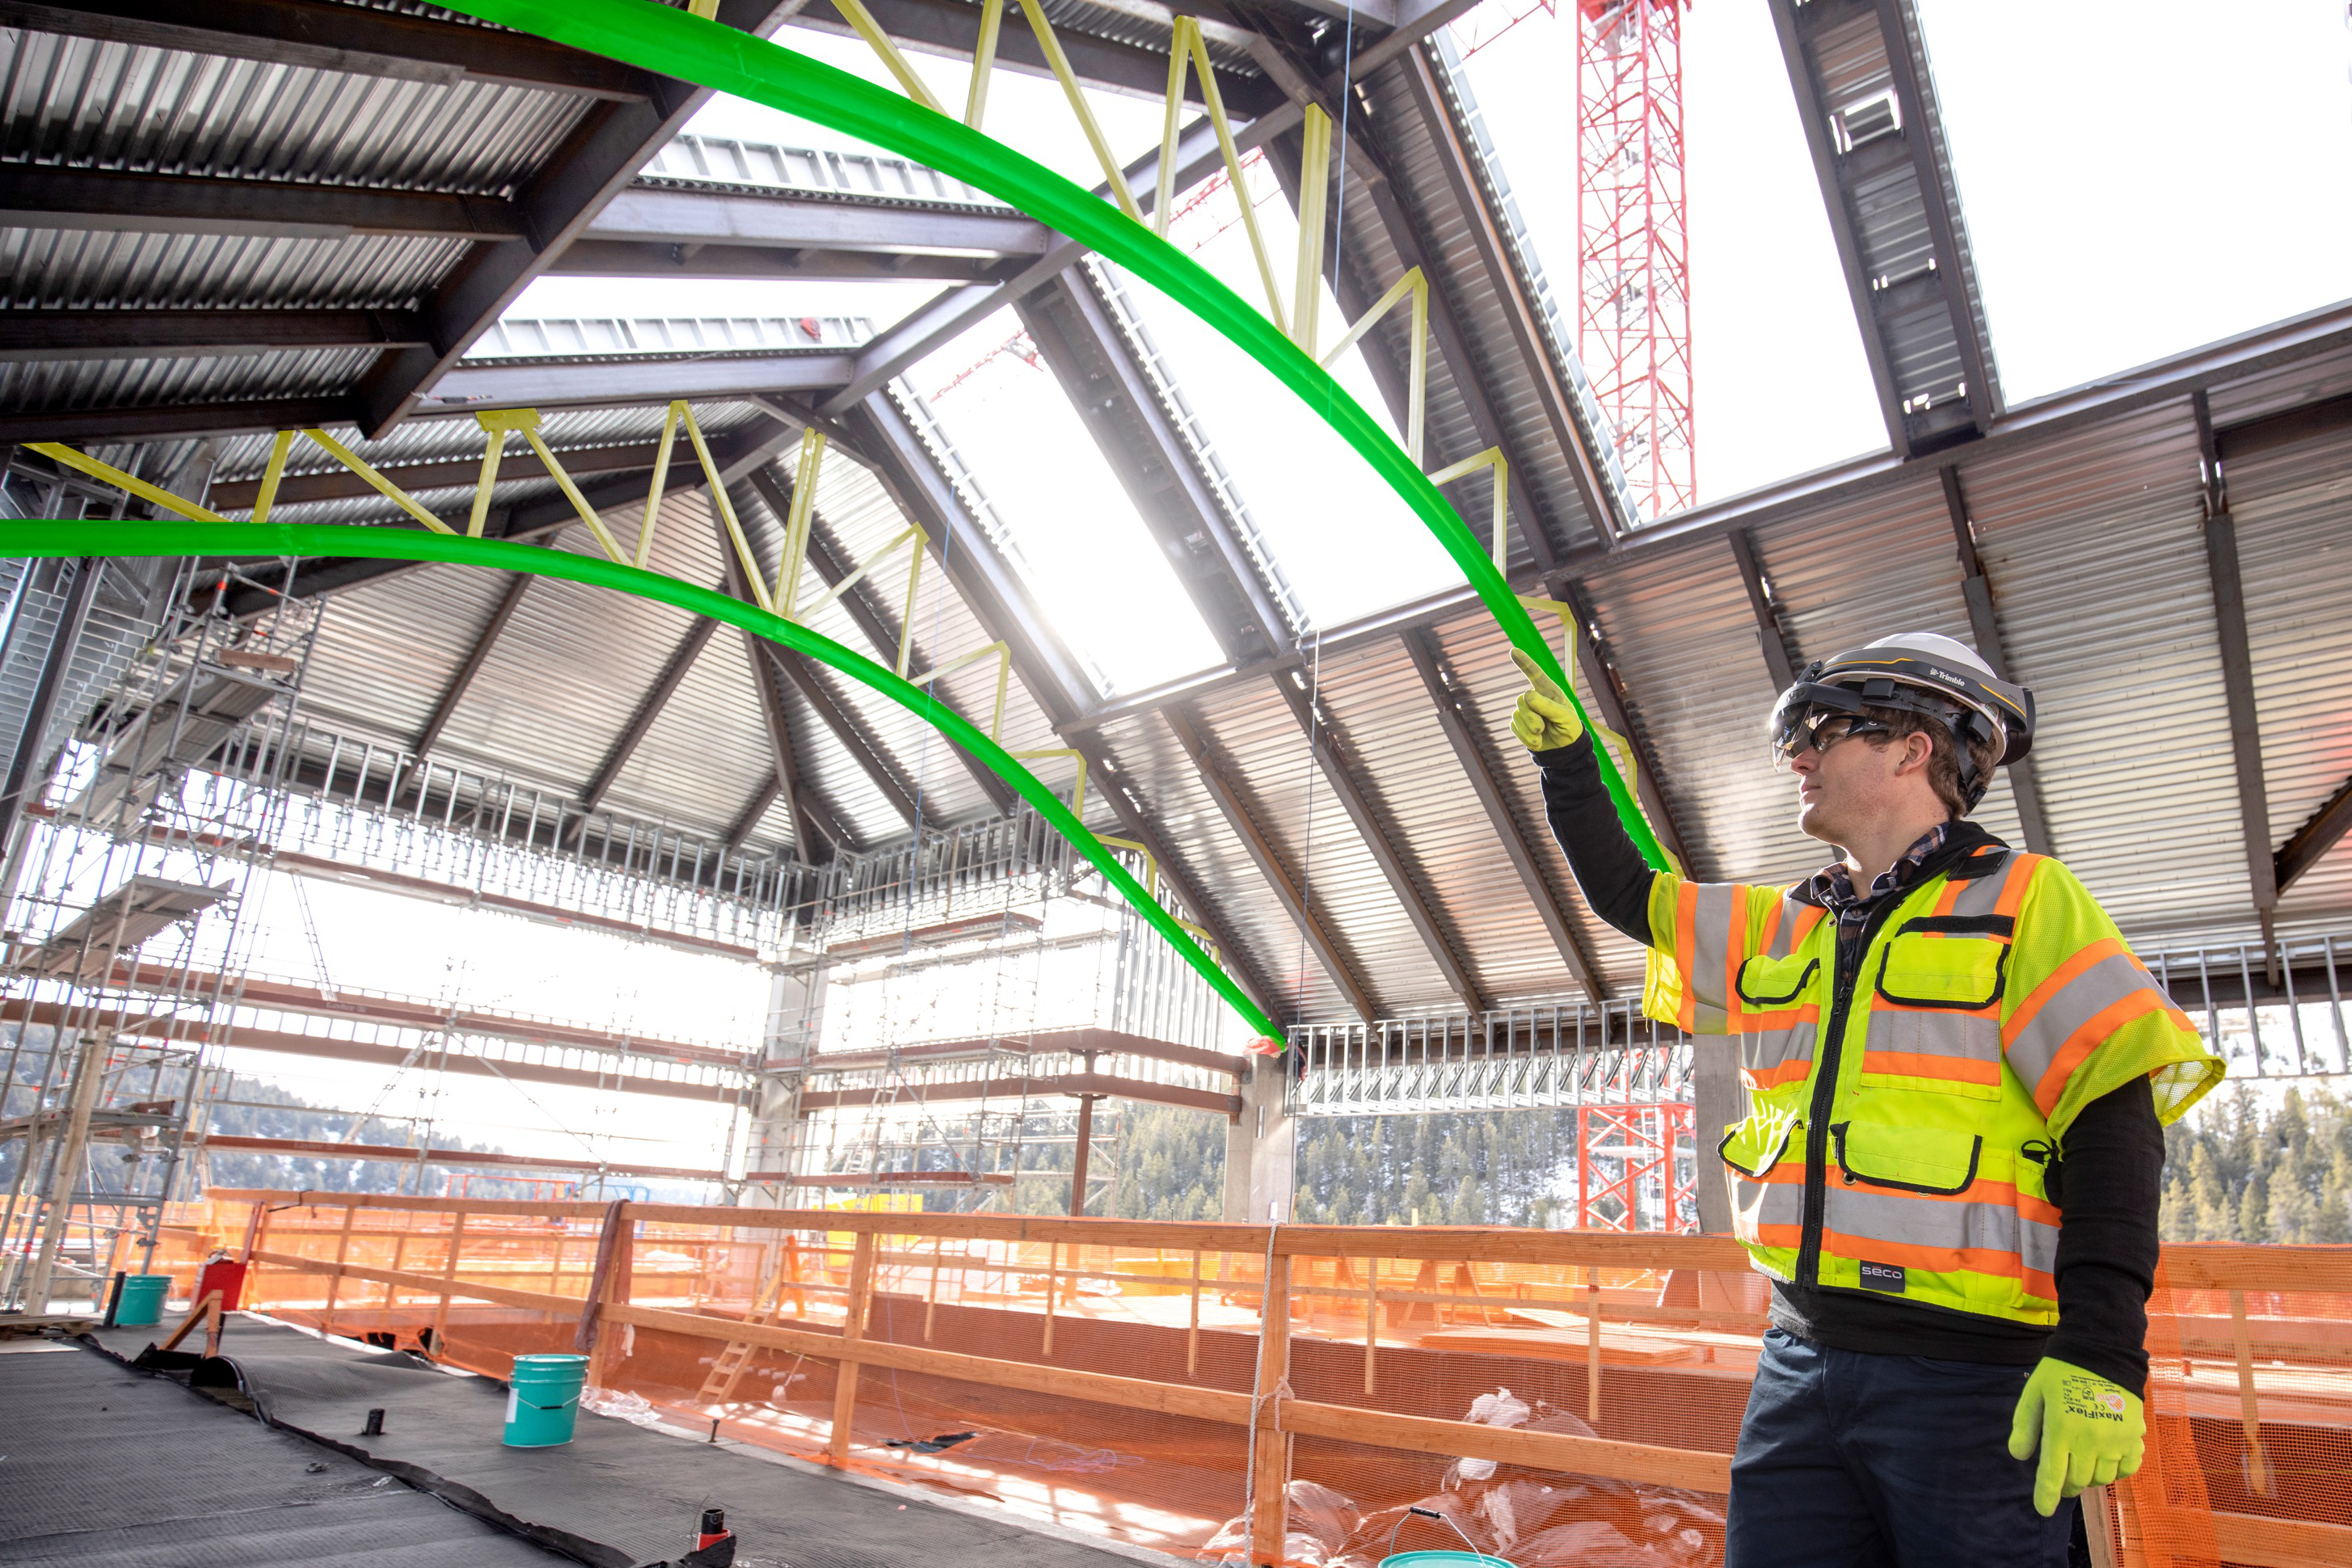 Trimble officially updates AR hard hat with HoloLens 2